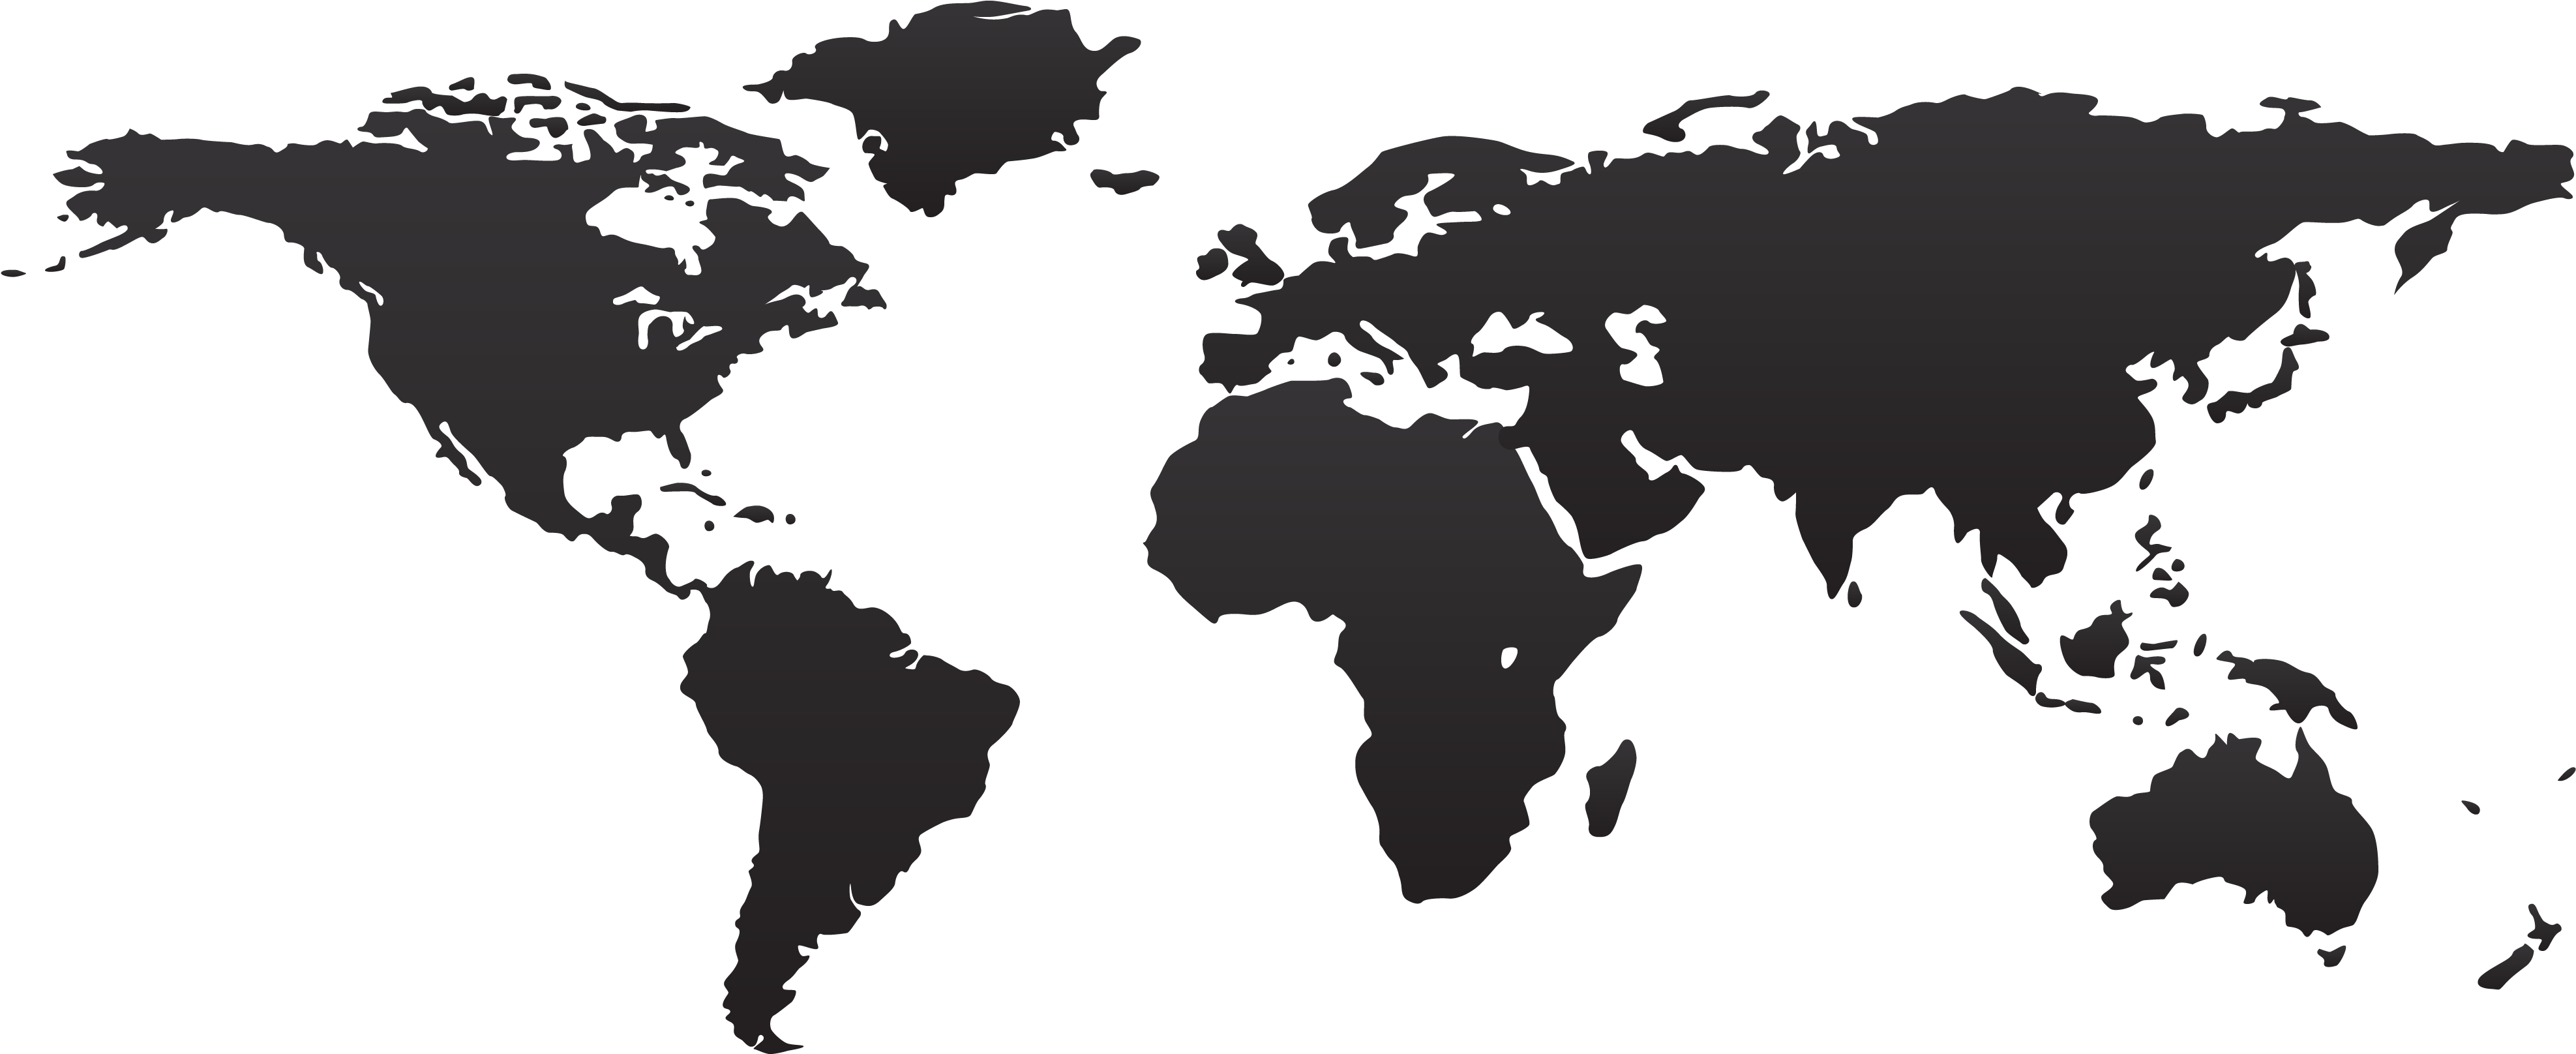 Download World Map Png   High Resolution World Map Vector PNG